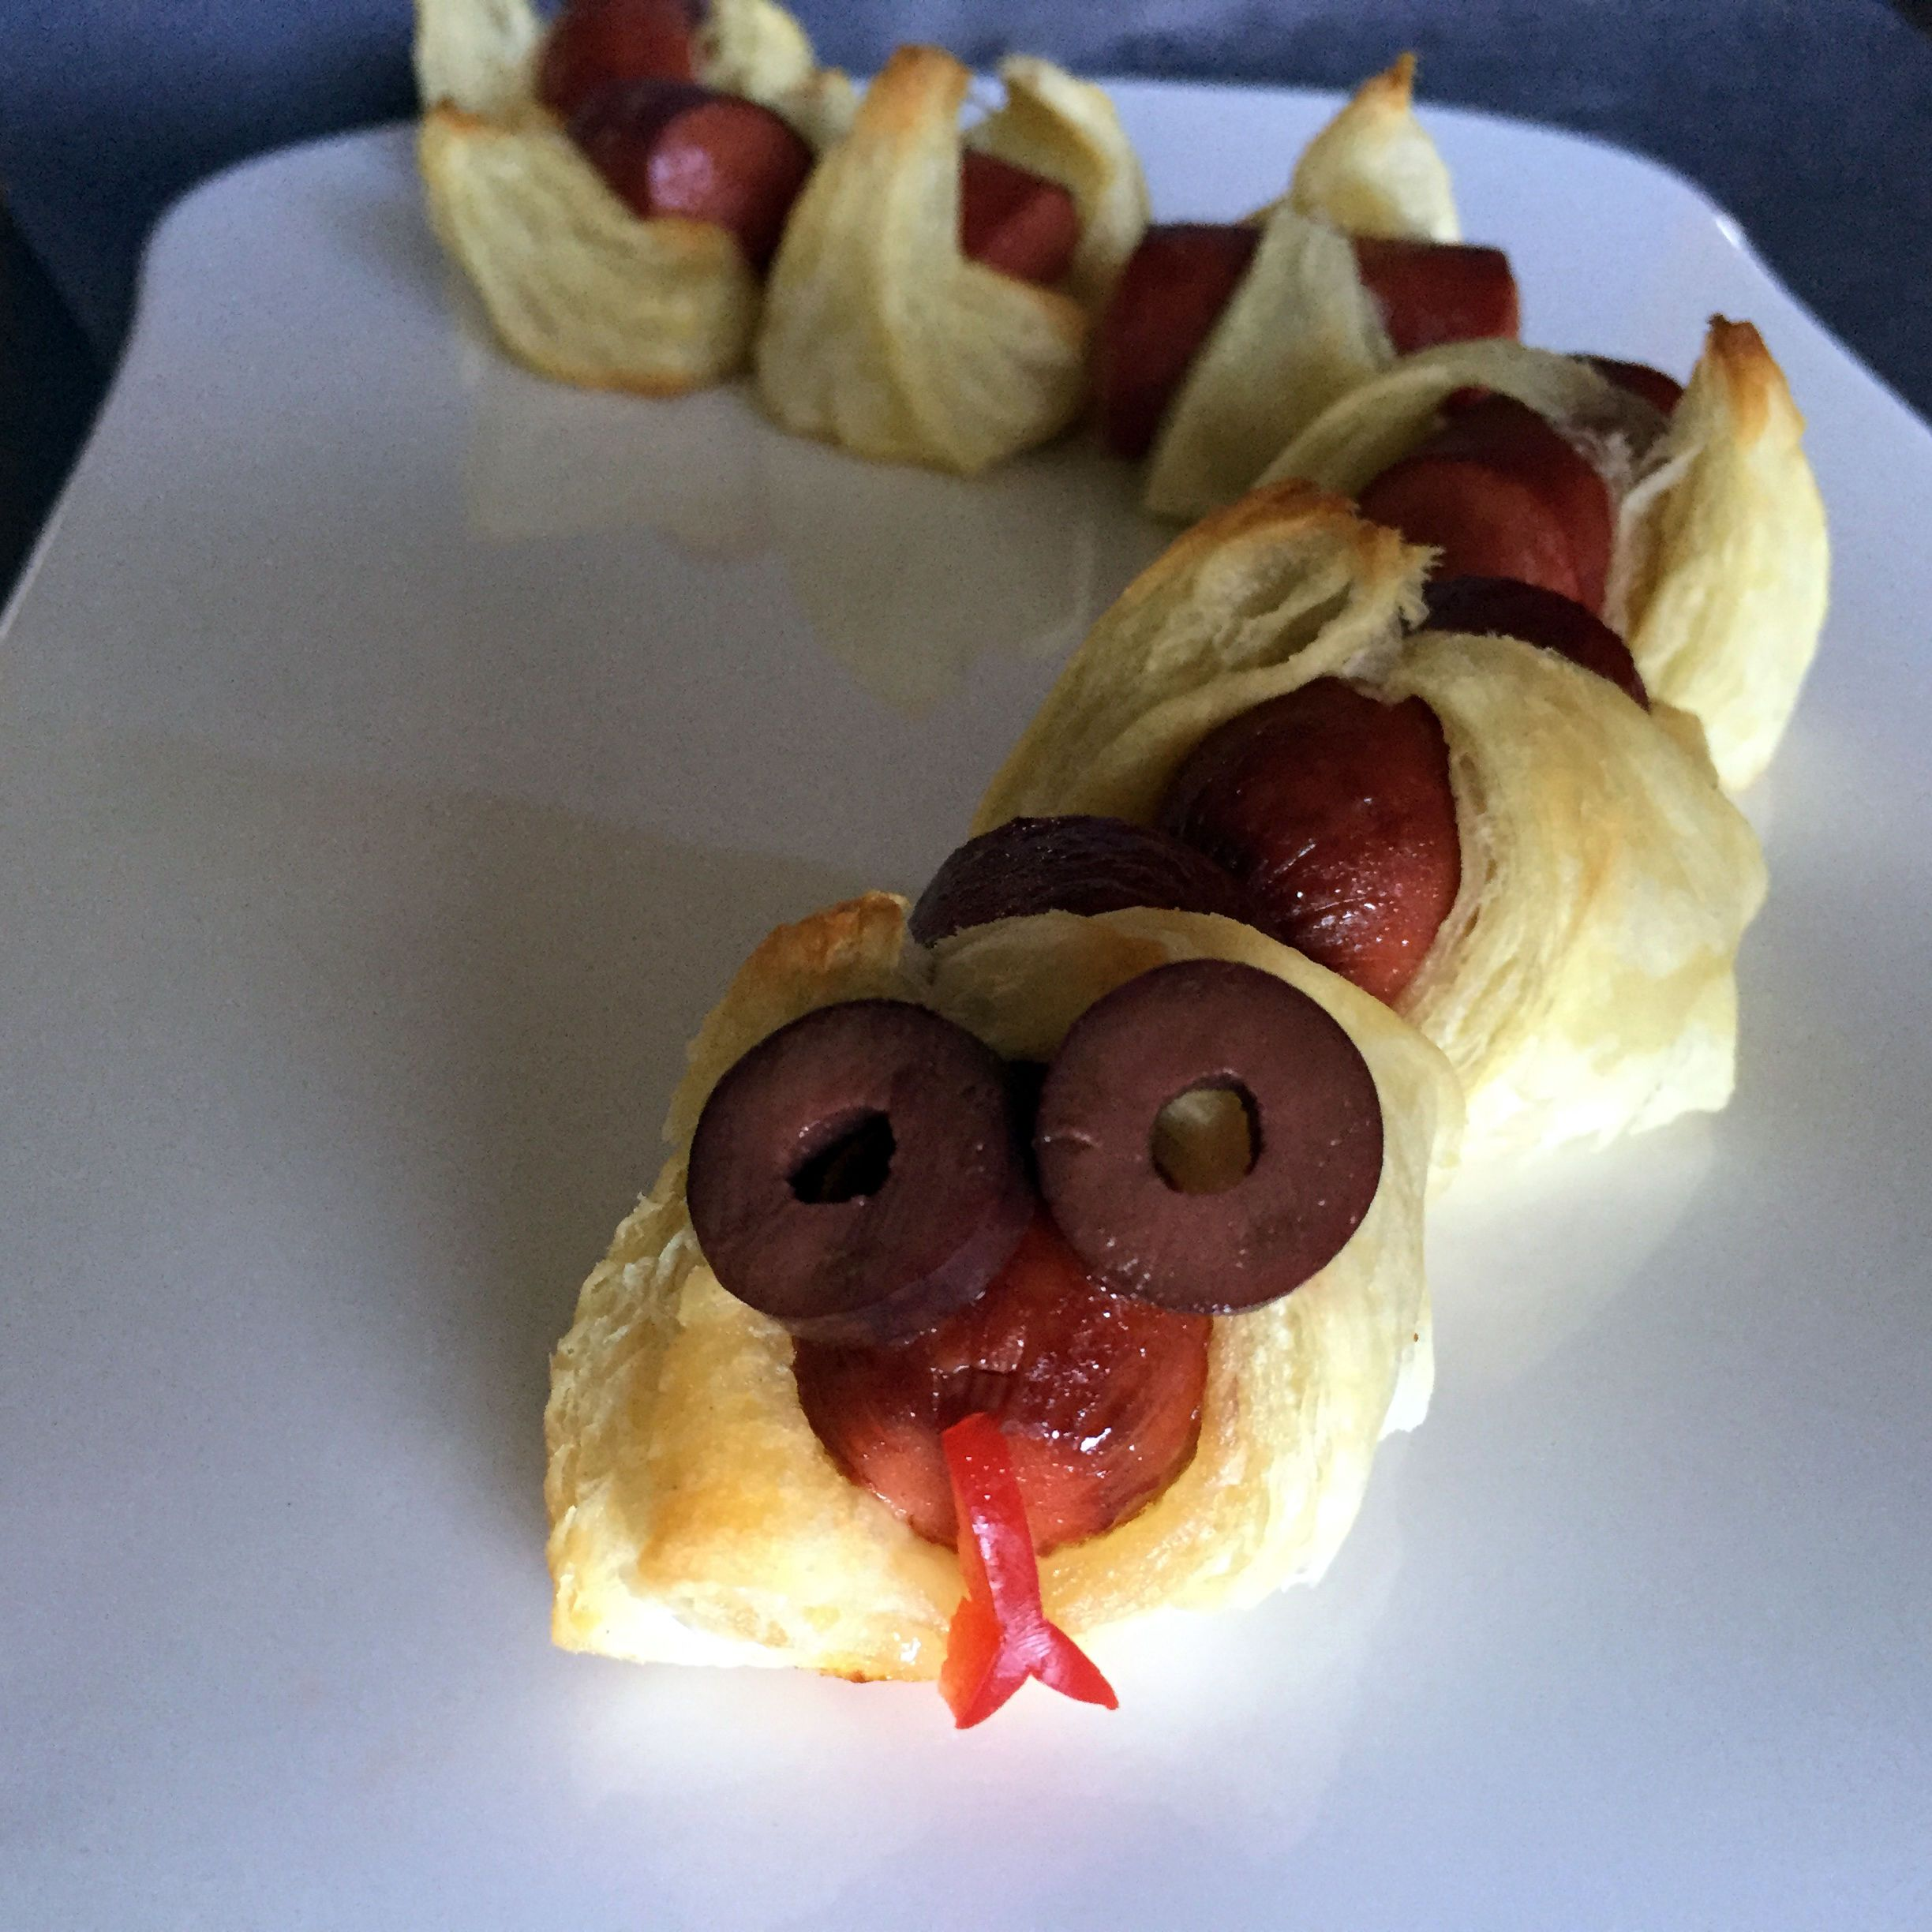 Pin by Nathan Forester on Hall Of Food Pigs in a blanket